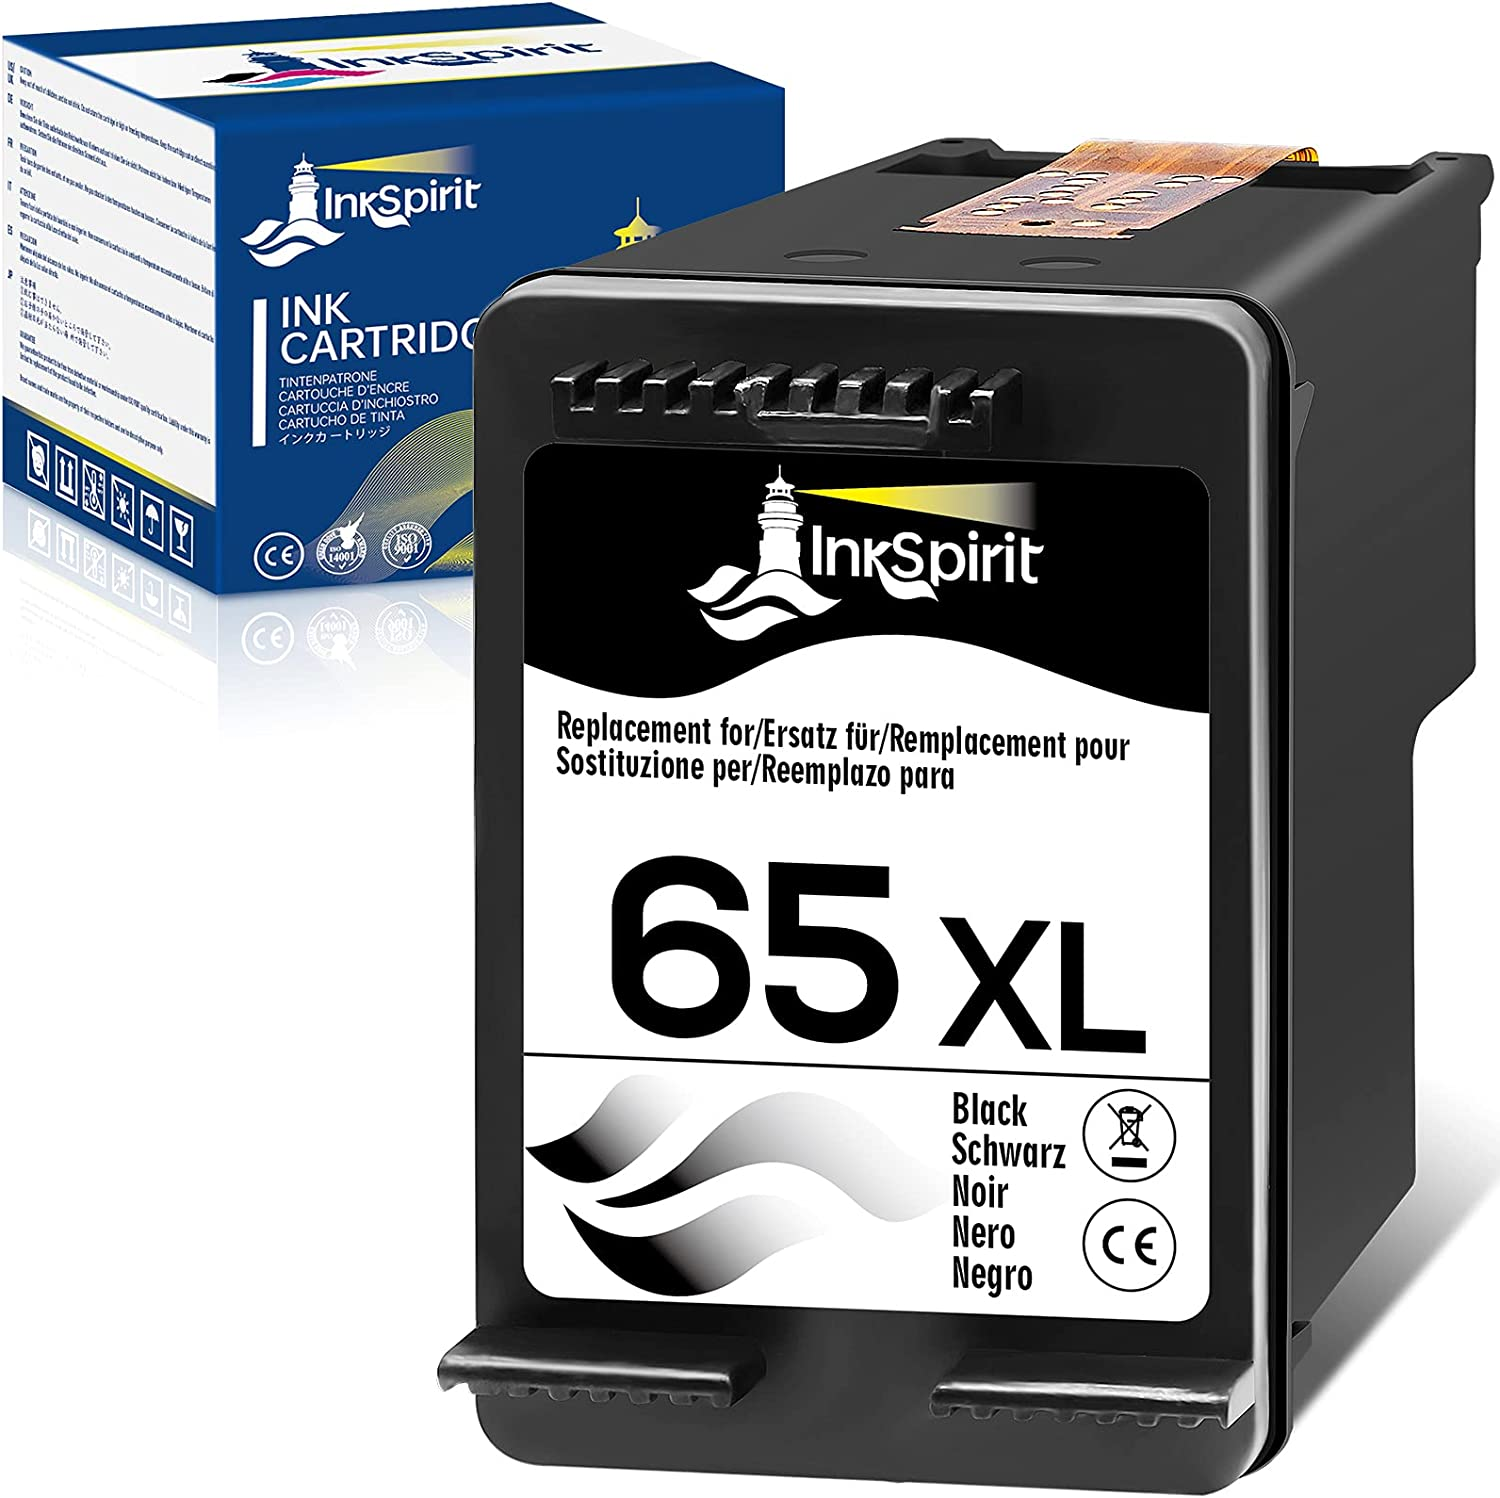 InkSpirit 65 Black Ink Cartridge Remanufactured Replacement for HP 65XL 65 XL N9K04AN Used in Envy 5052 5055 5012 5010 5020 5030 DeskJet 2600 2622 2652 3722 3755 3752 2635 2636 AMP 120 100 ,1-Pack